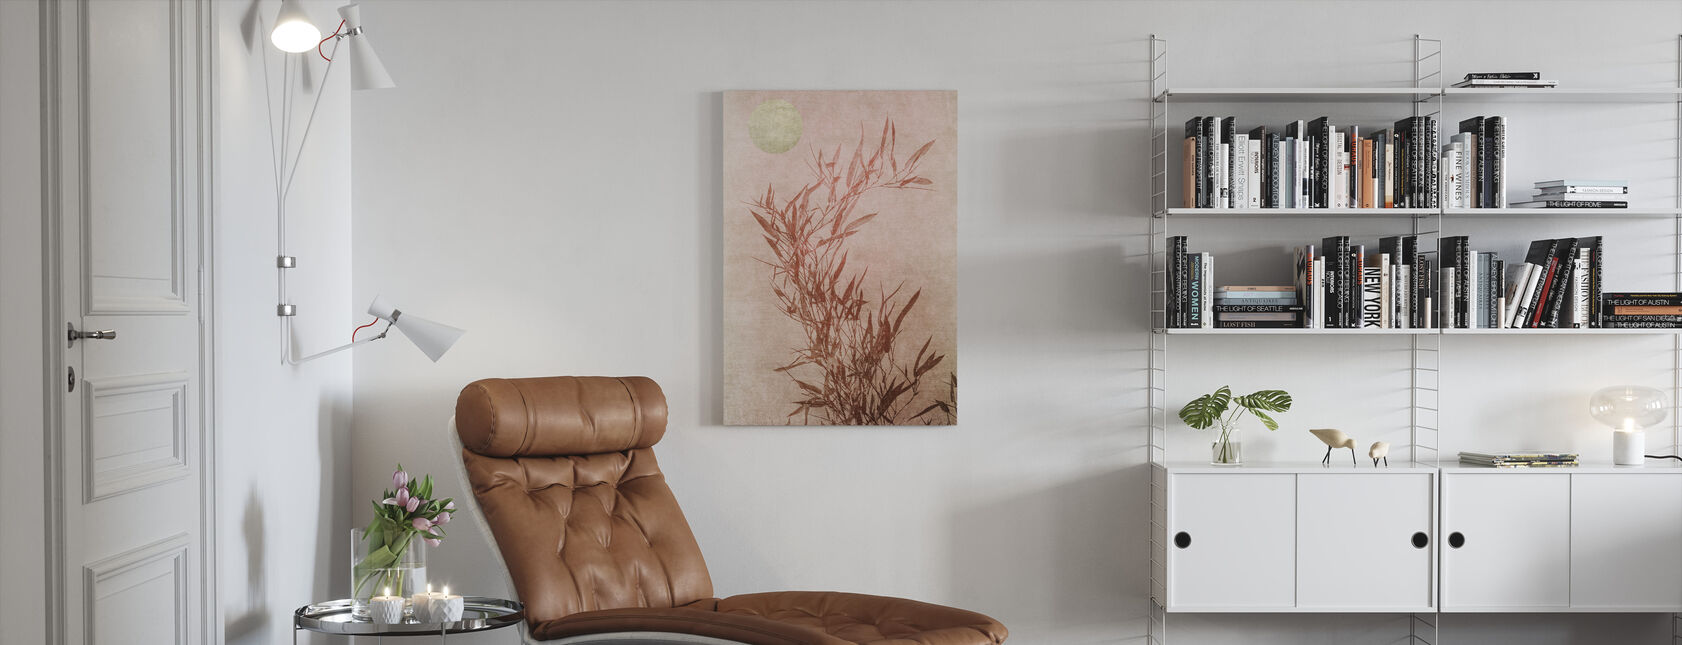 Sentimental Touch - Canvas print - Living Room